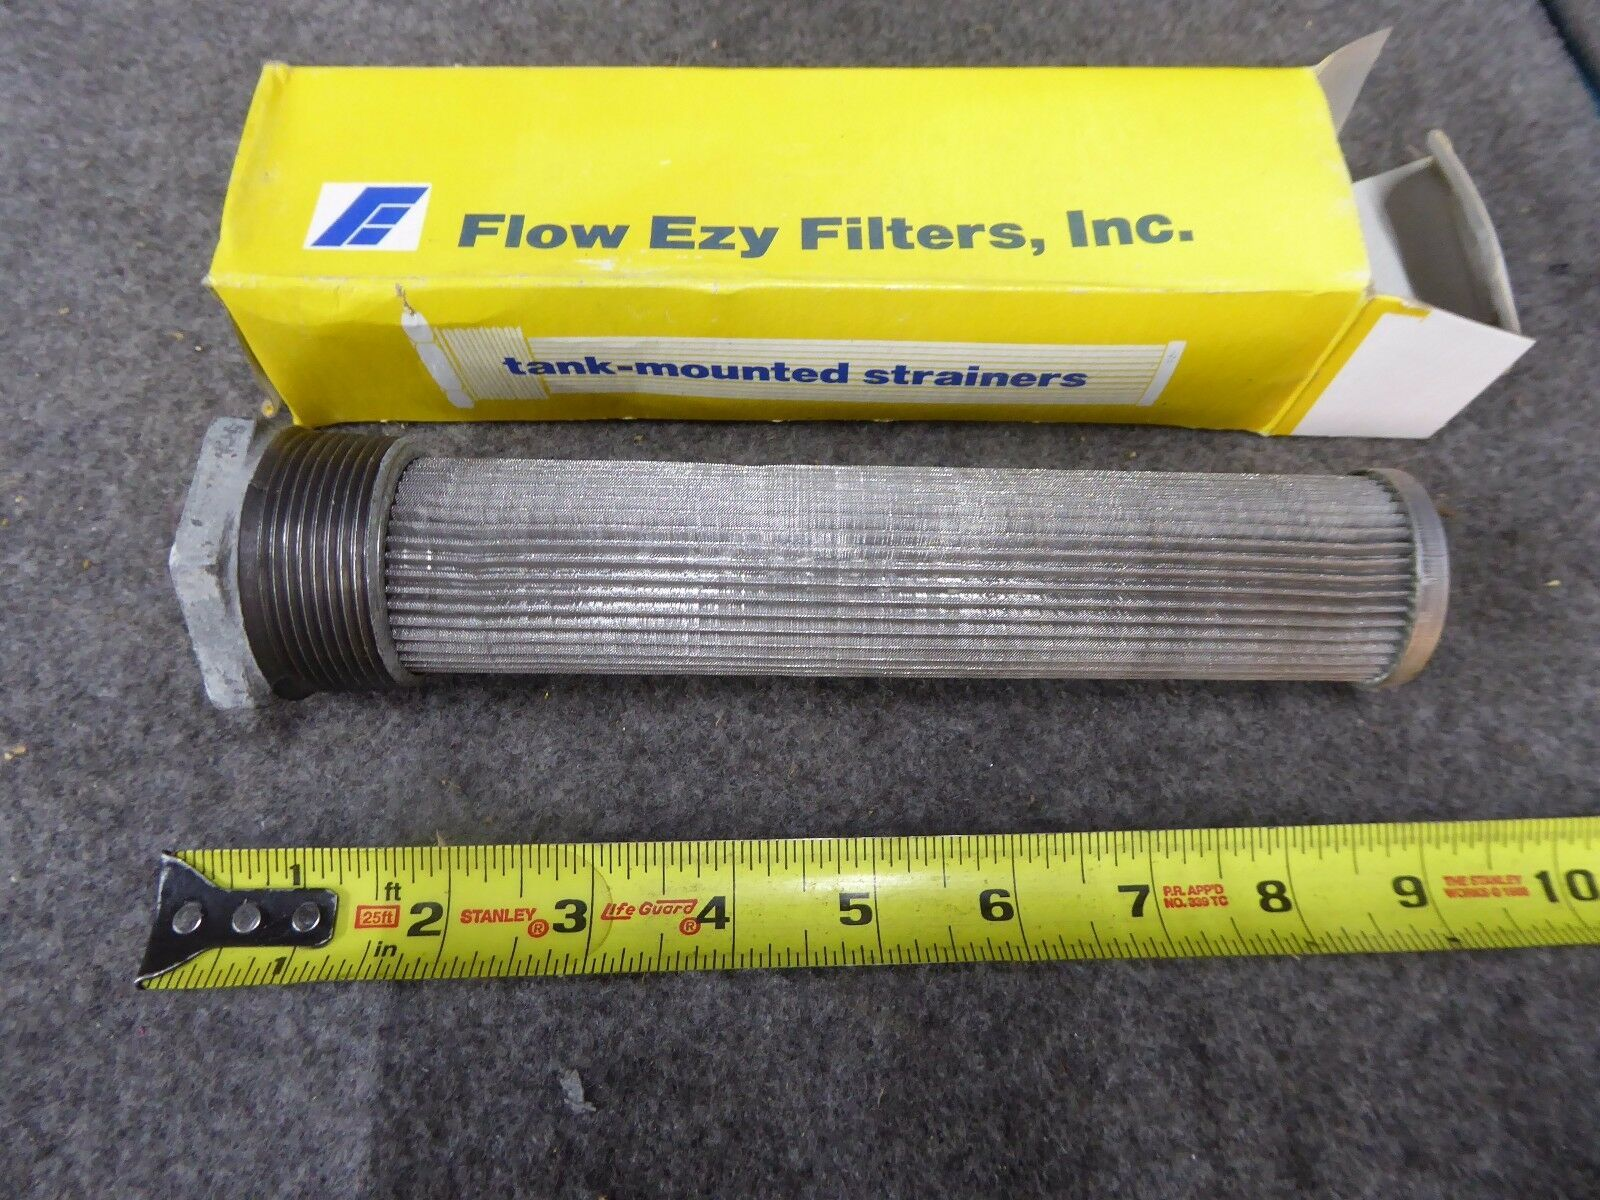 2 Flow Ezy 7199-06 Filters Tank Mounted Strainers